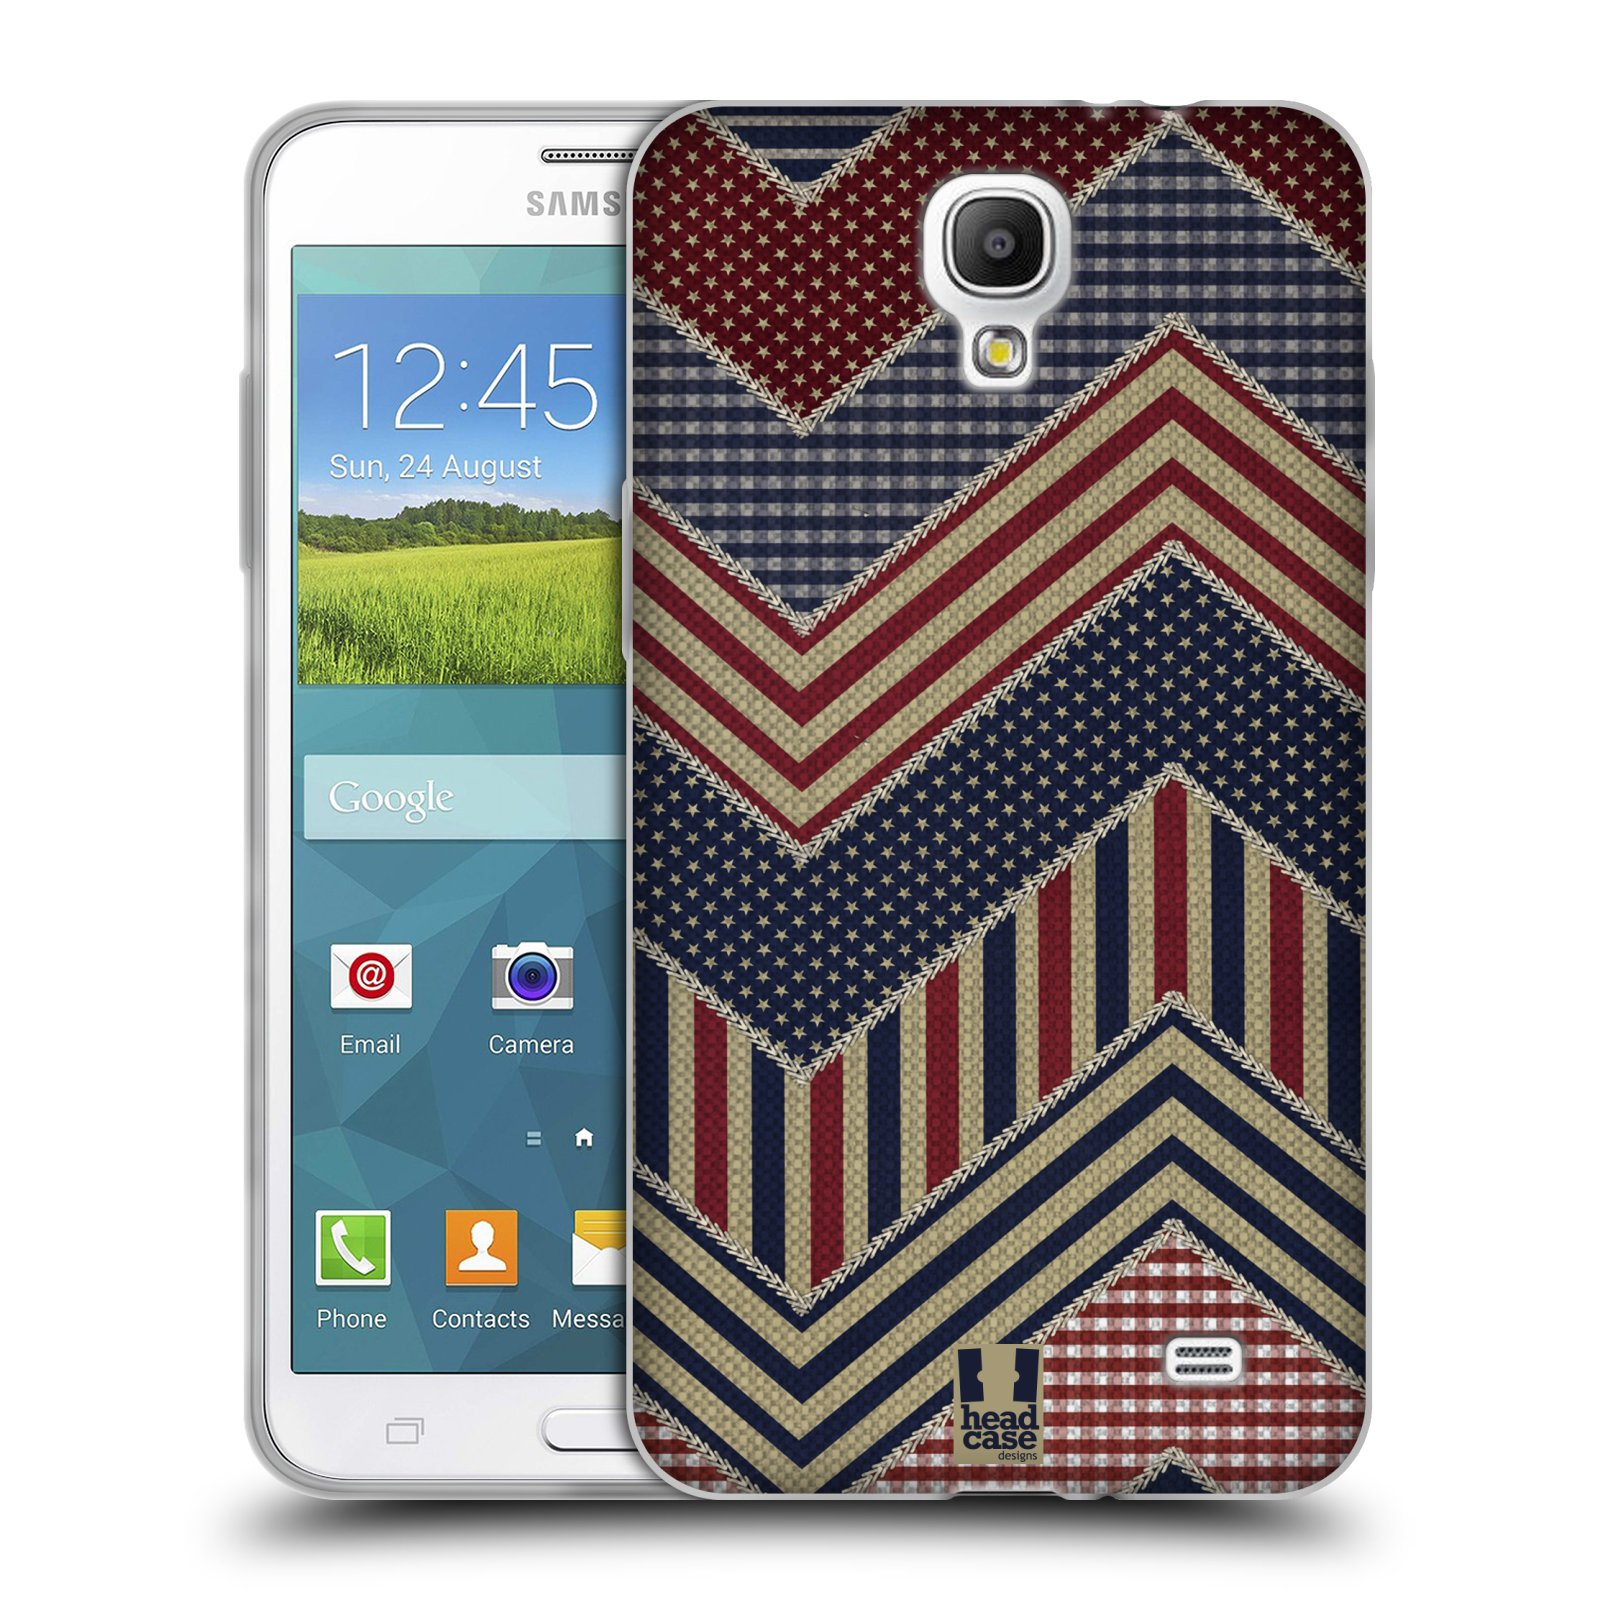 Details about HEAD CASE DESIGNS STARS AND STRIPES COLLECTION USA GEL ...